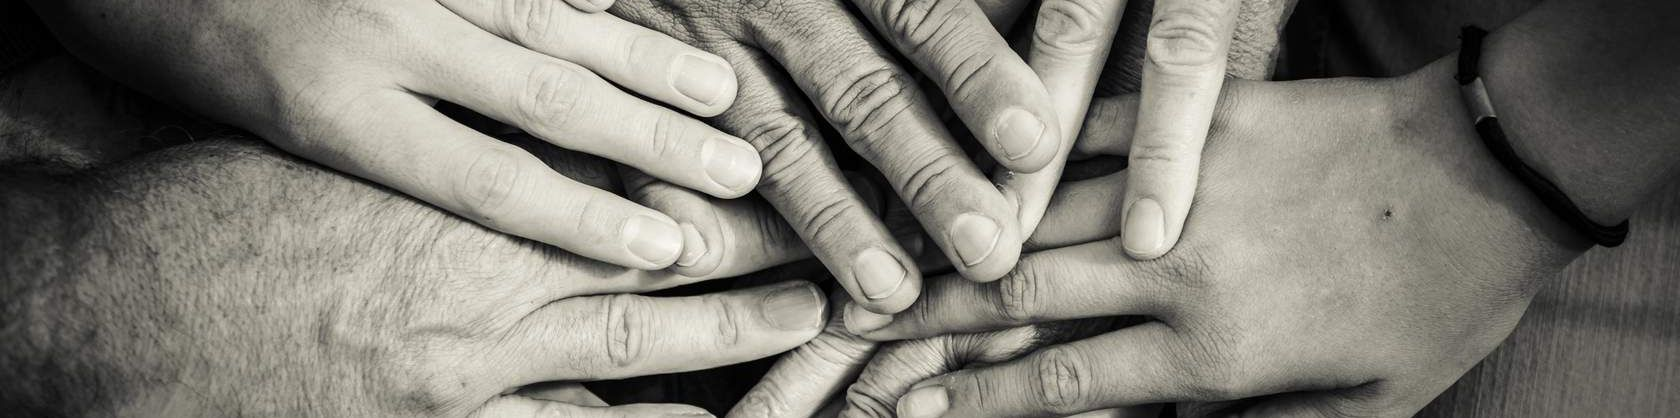 Black and white image of people's hands holding each other